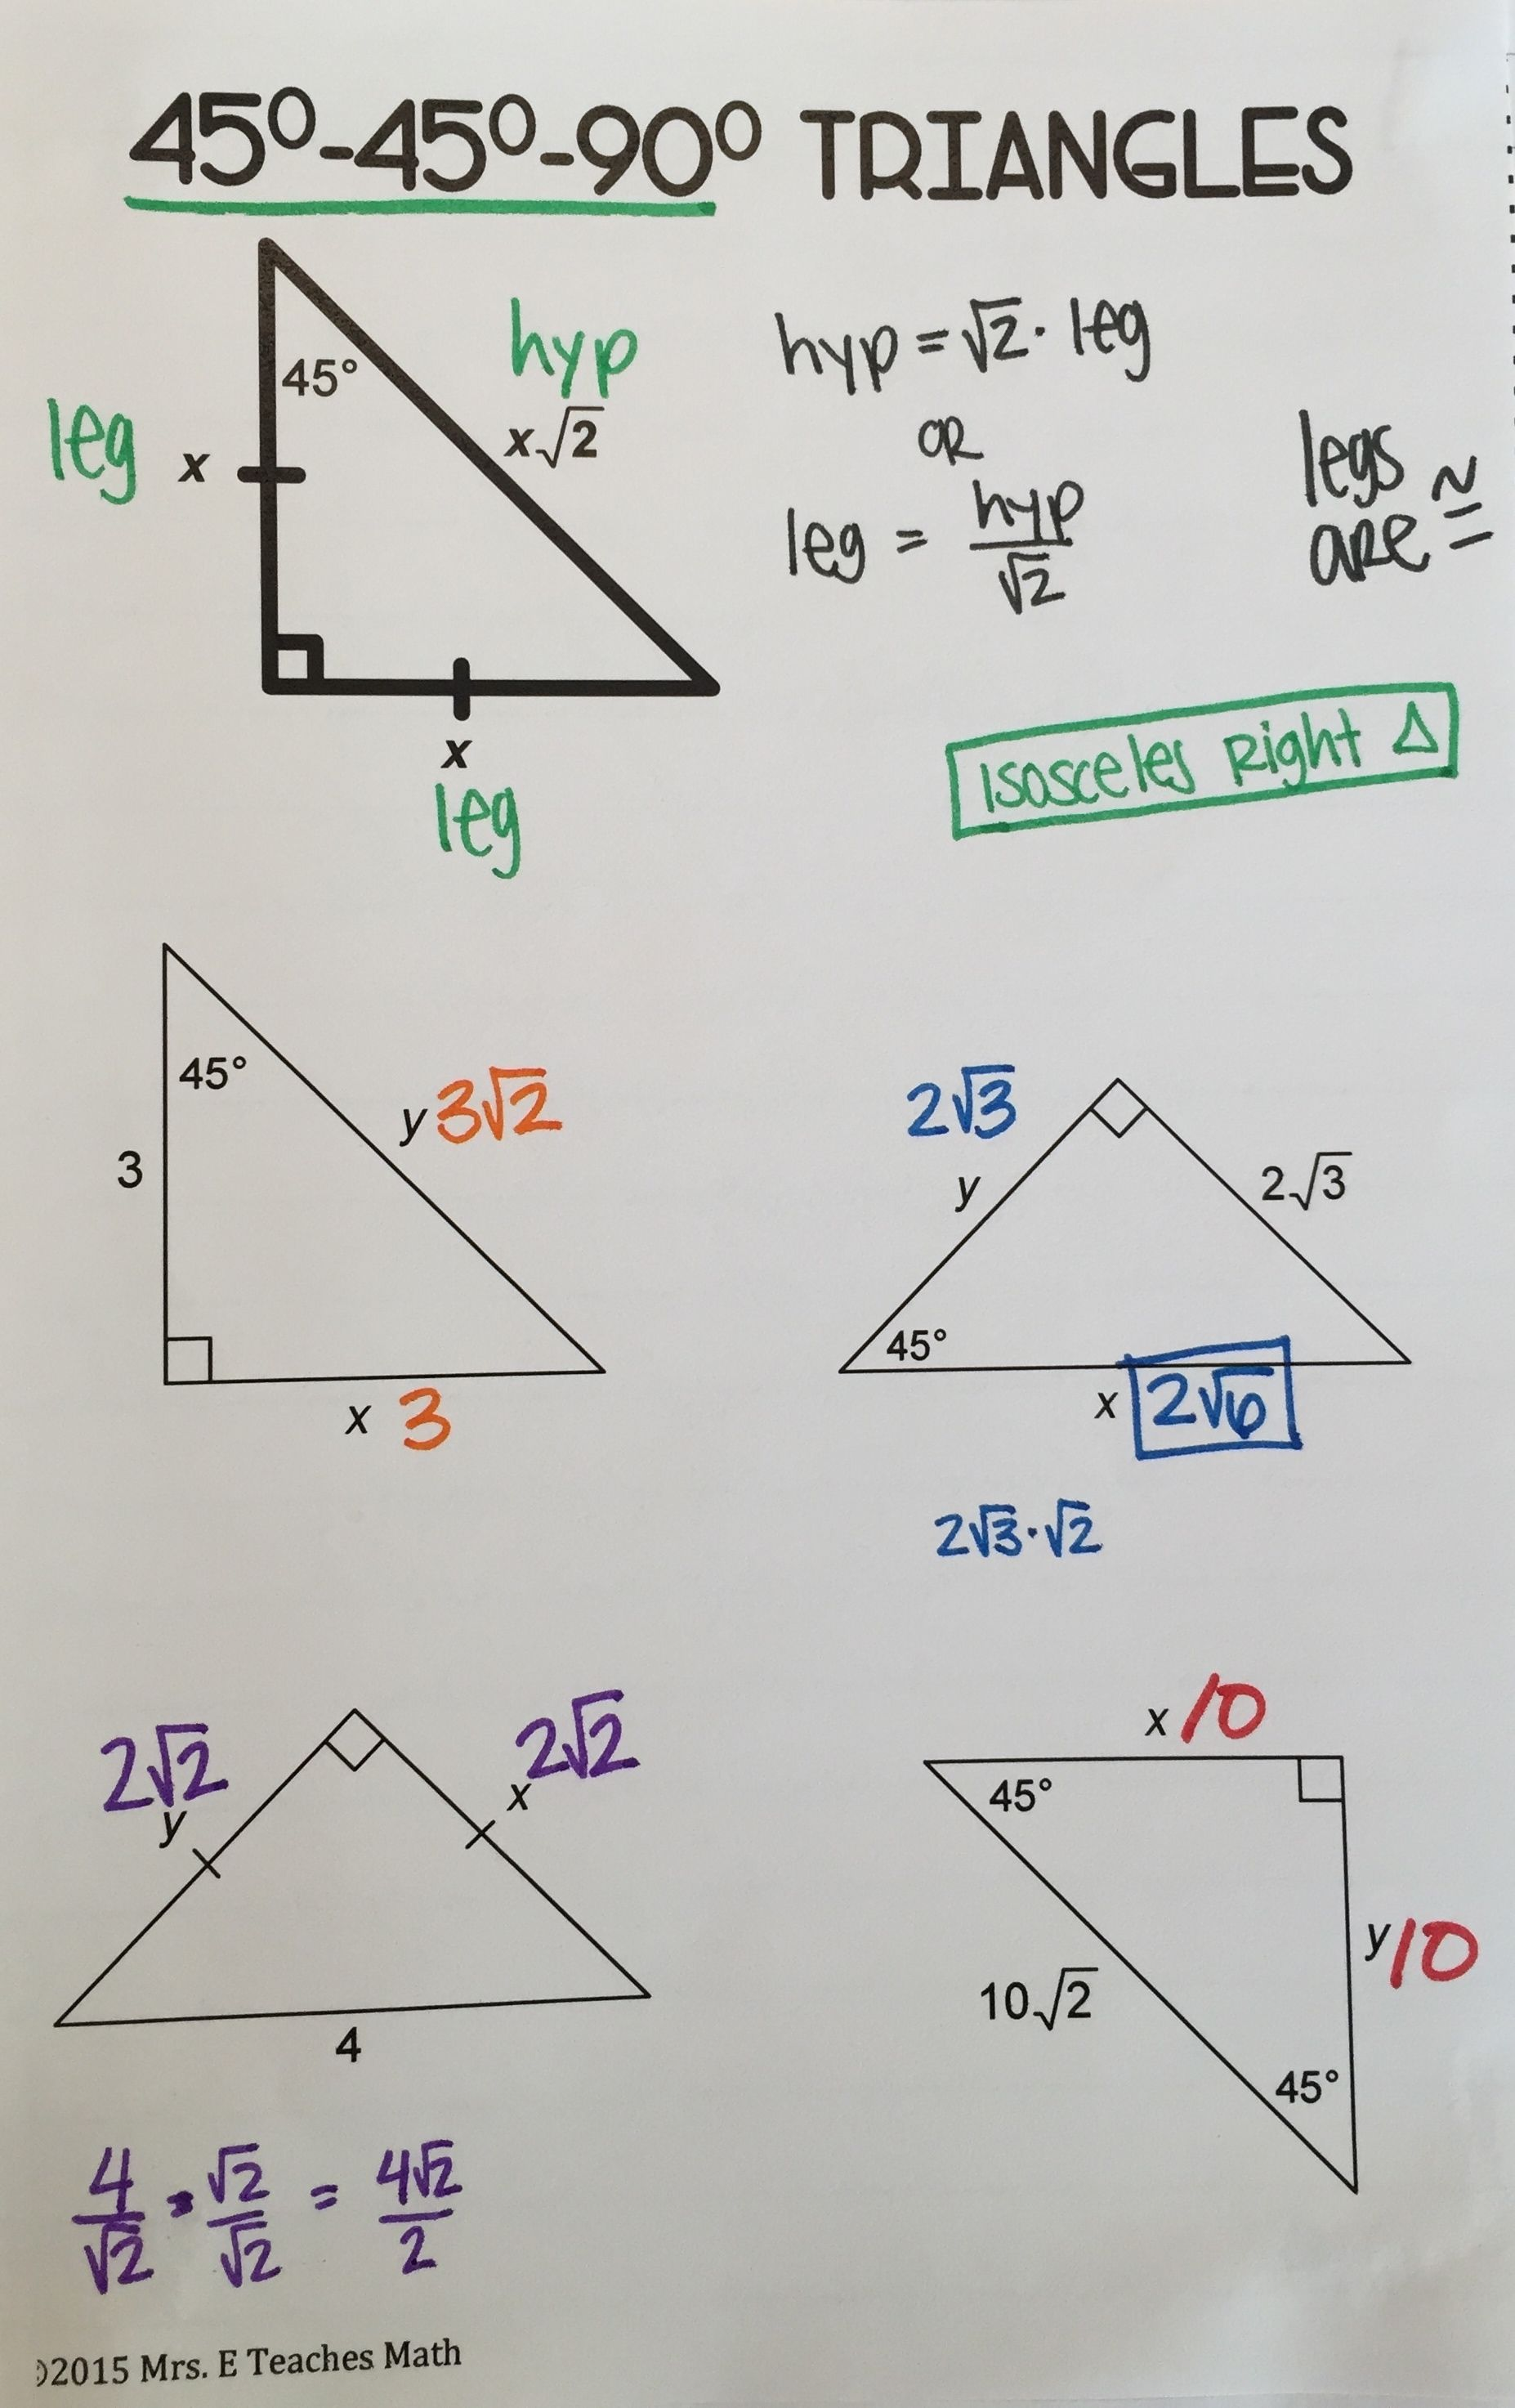 Worksheets Special Right Triangles 30 60 90 Worksheet Answers free special right triangles interactive notebook page for 45 90 triangles